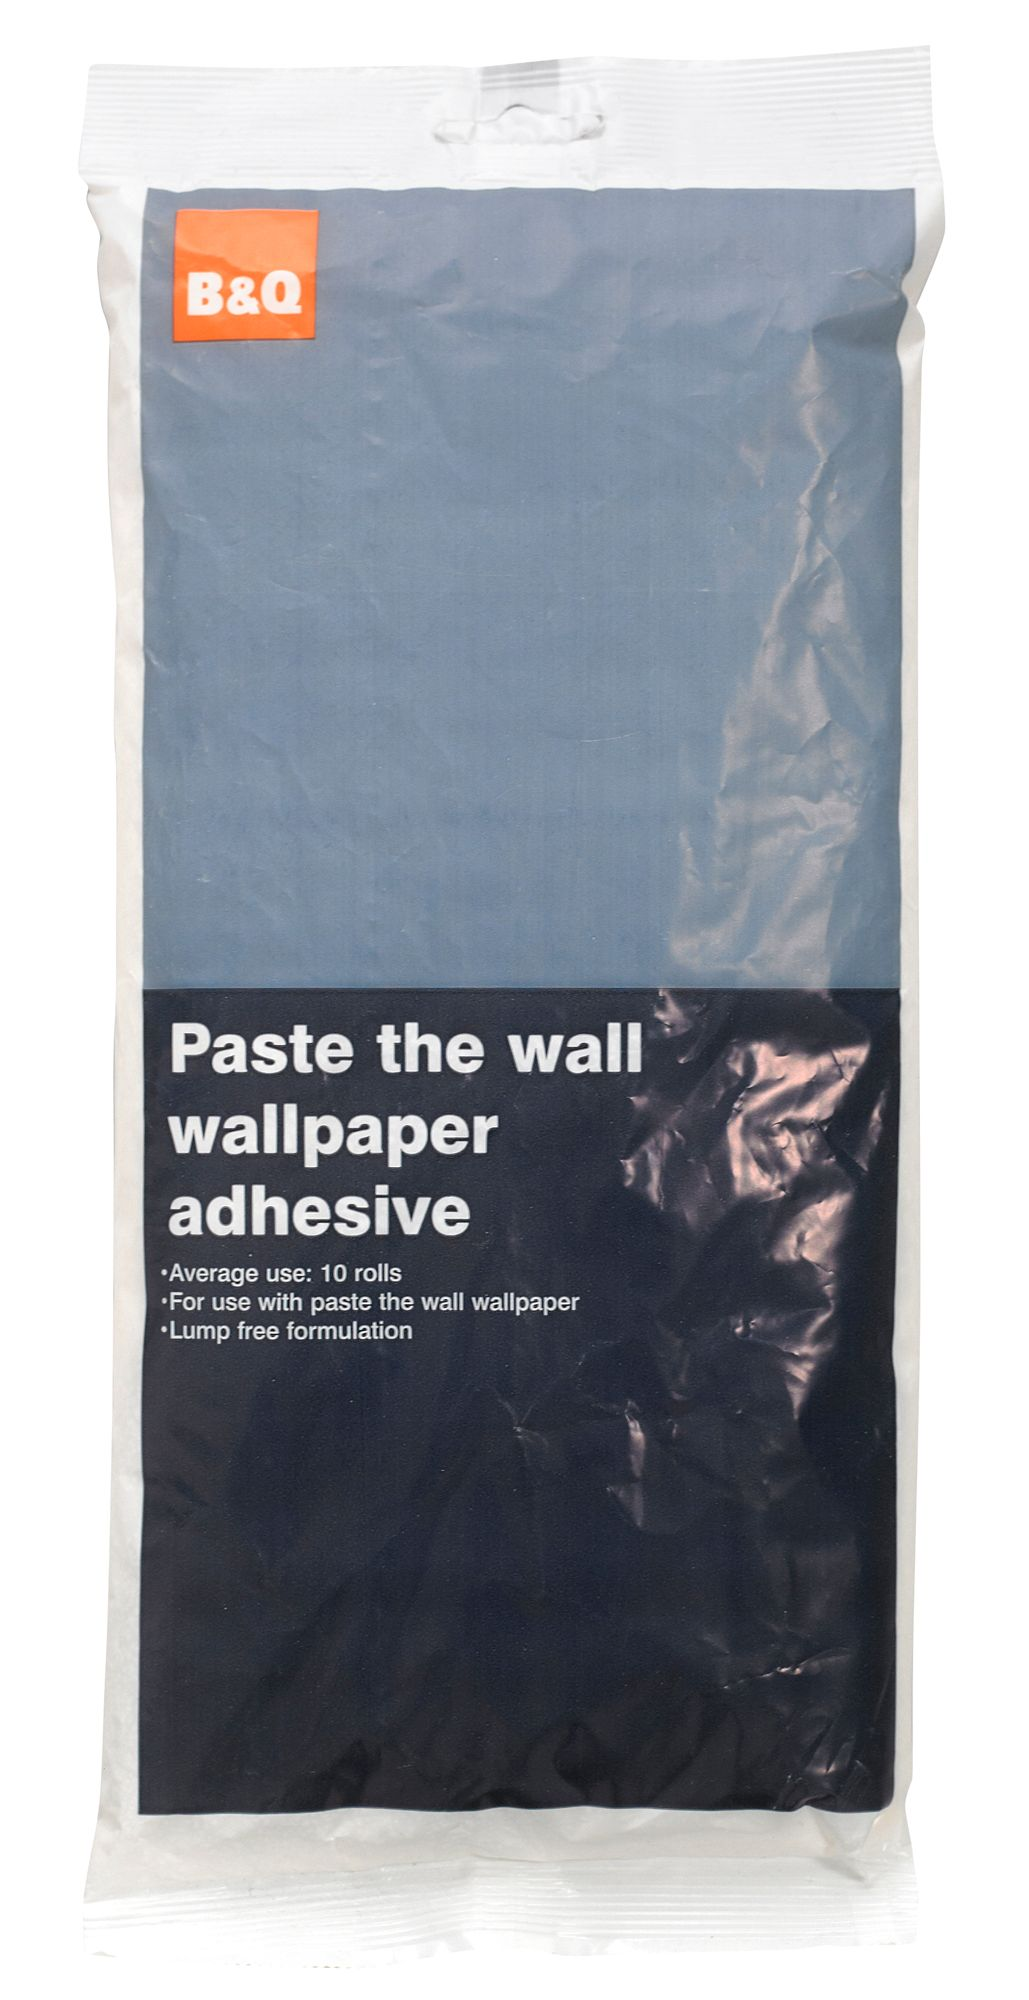 Can You Paste The Wall With Normal Wallpaper